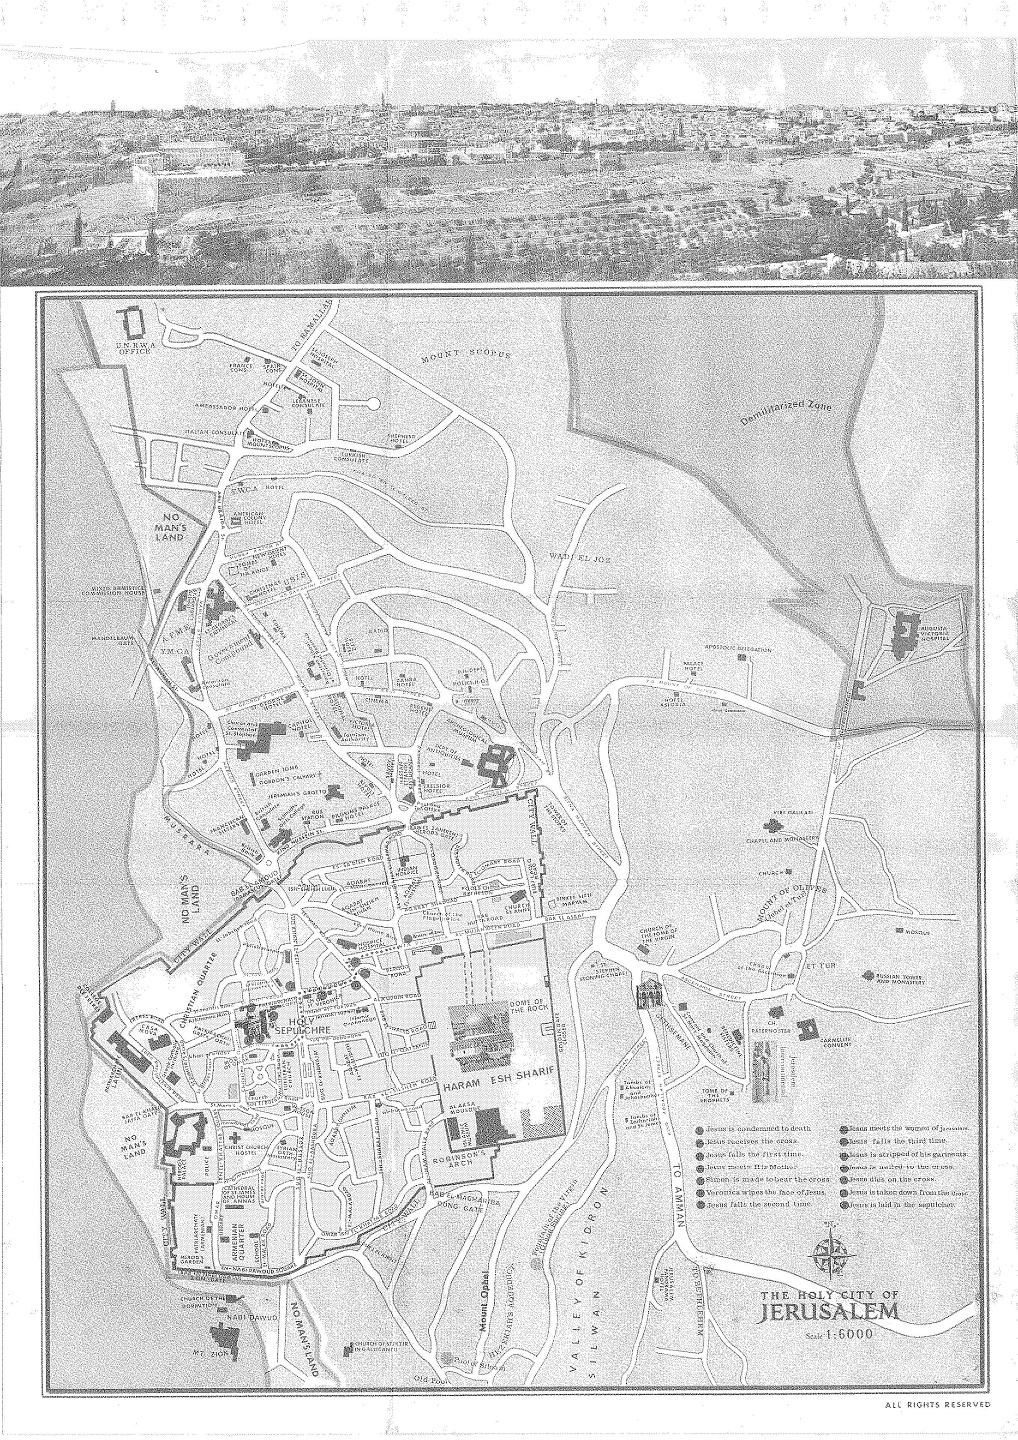 Outtakes of a UFO Investigator Israel in the 1960s – Tourist Map Of Jerusalem